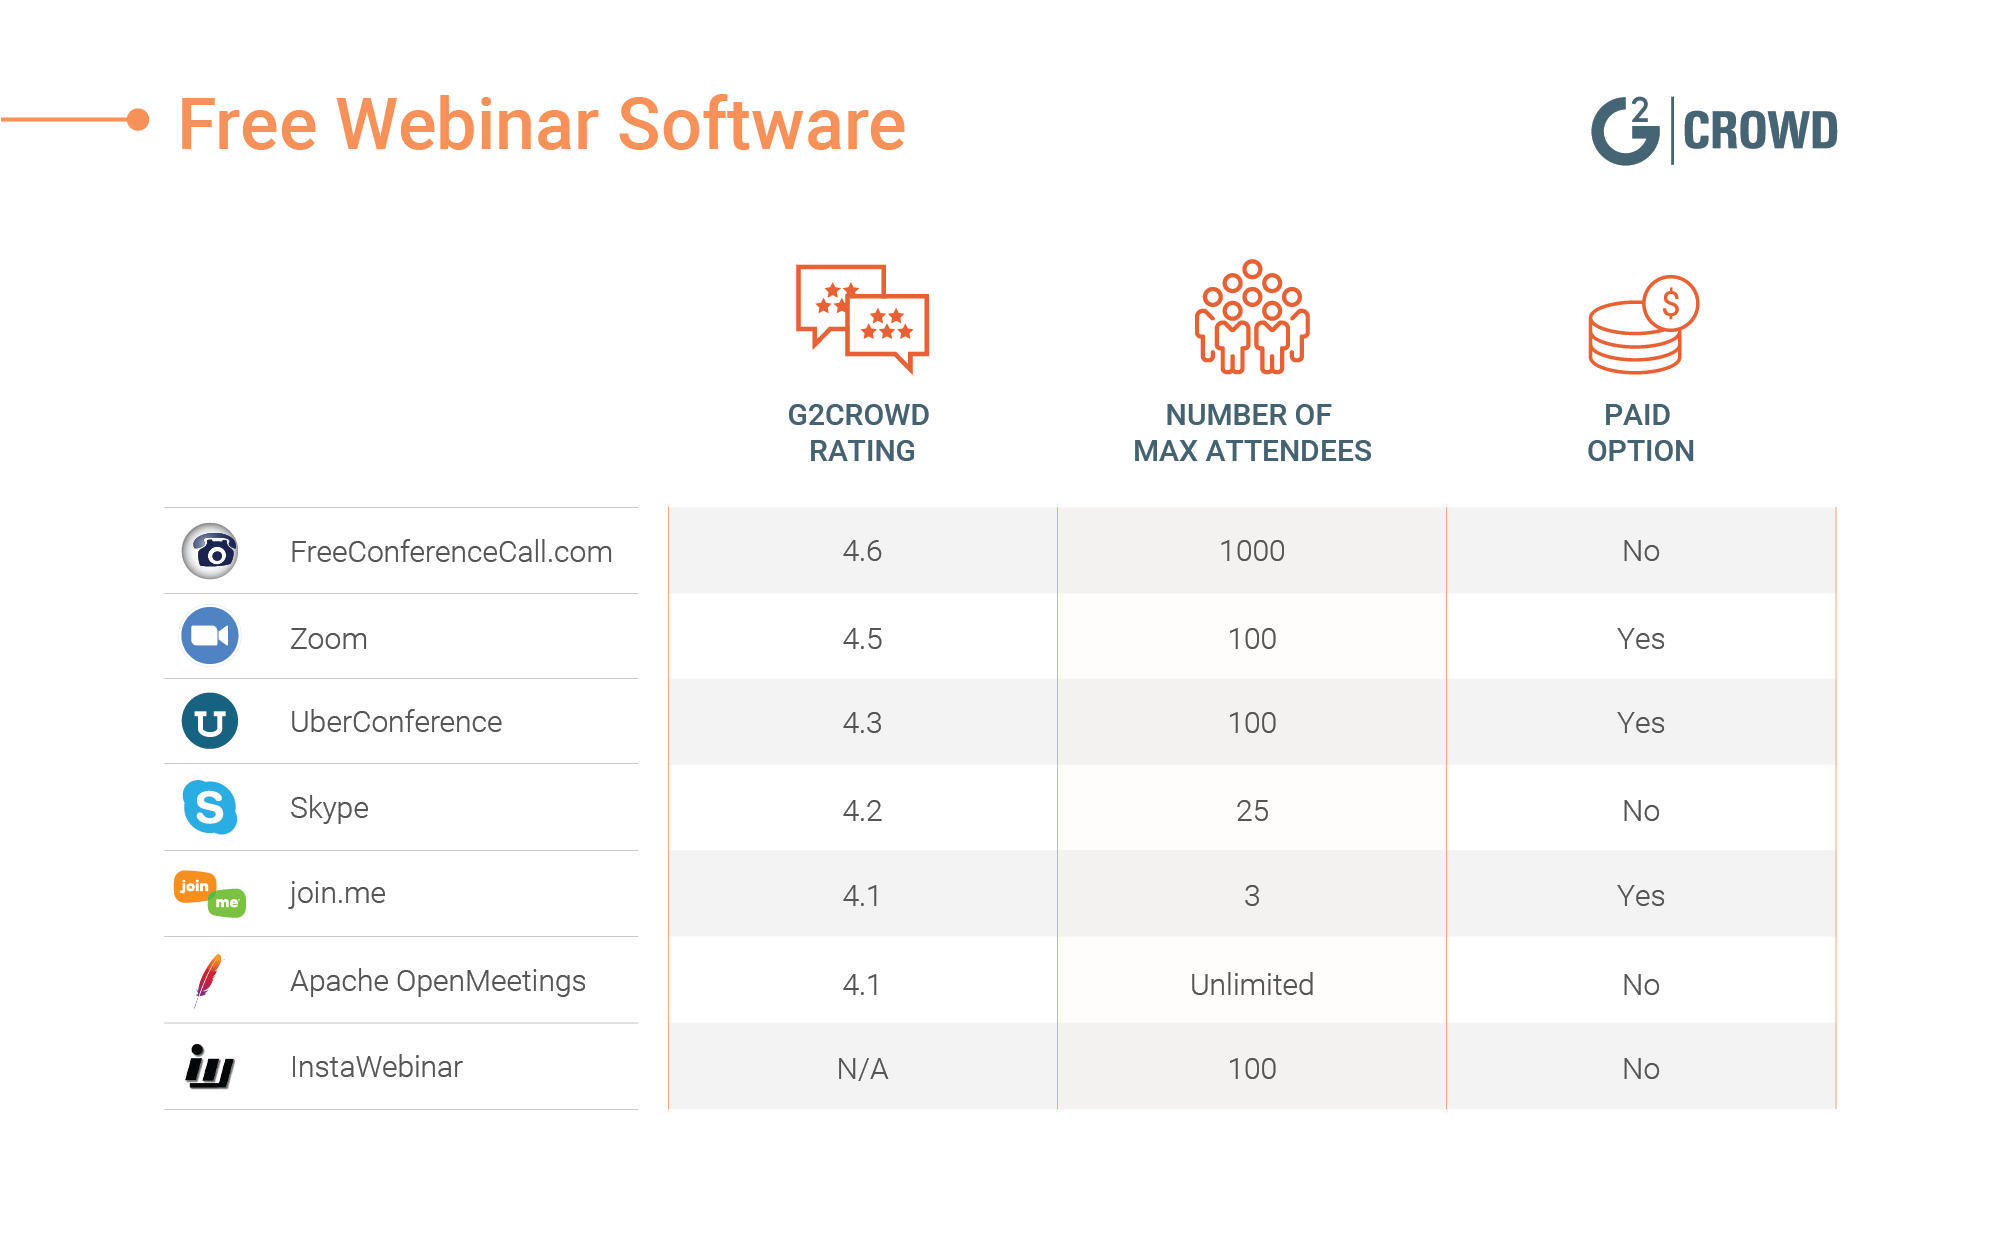 7 Best Free Webinar Software Solutions for 2019